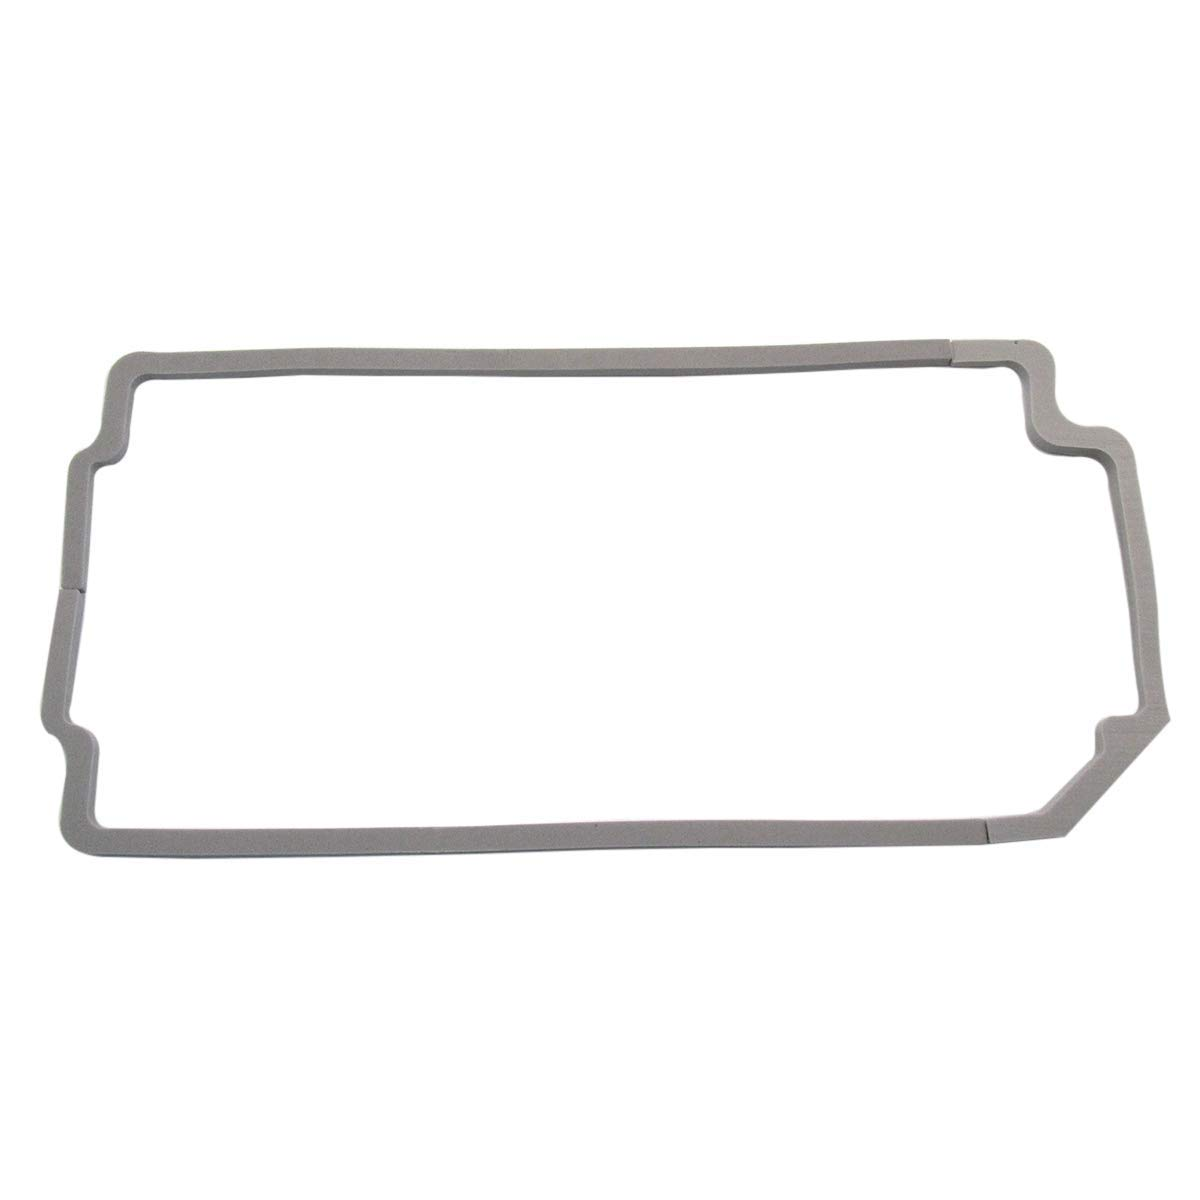 1SET #110-23108 Oil Reservoir Gasket FIT for JUKI DDL-5530 DDL-5550 DDL-5570N CKPSMS Brand